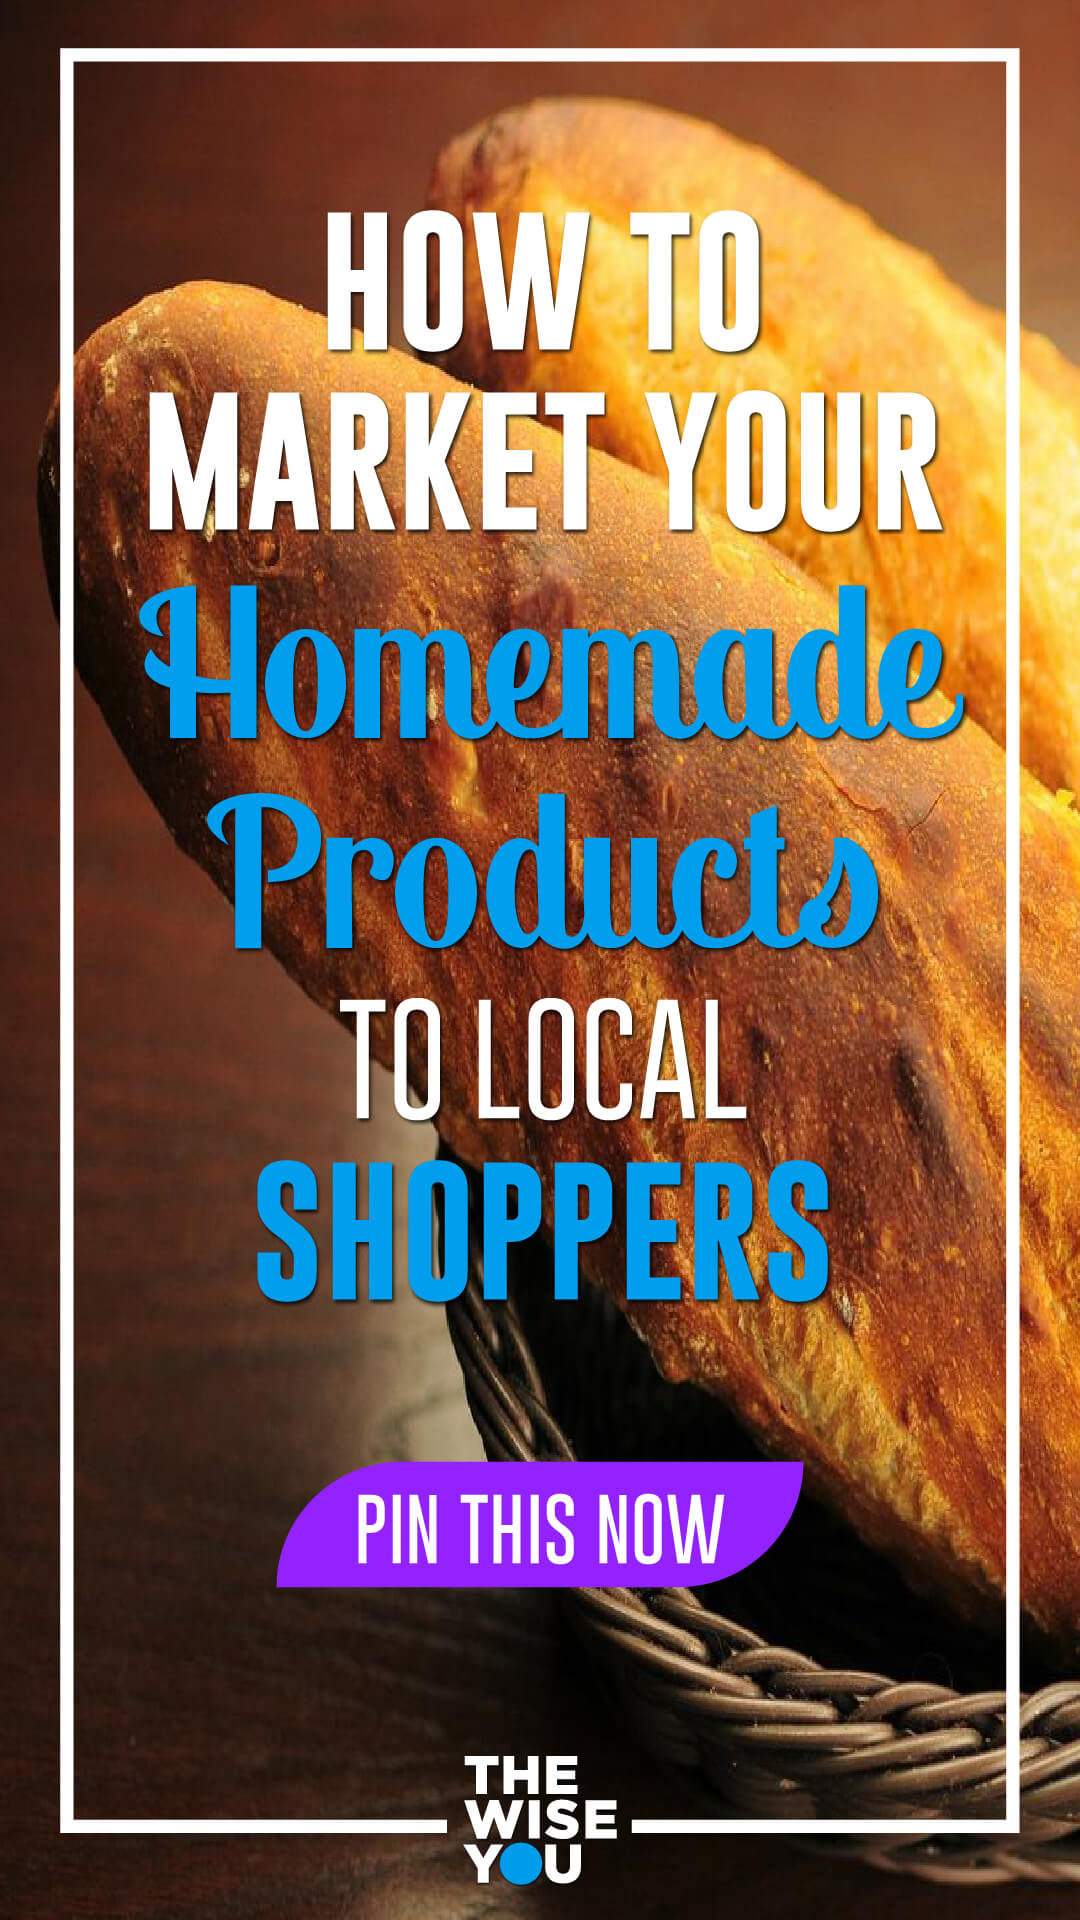 How to Market Your Homemade Products to Local Shoppers